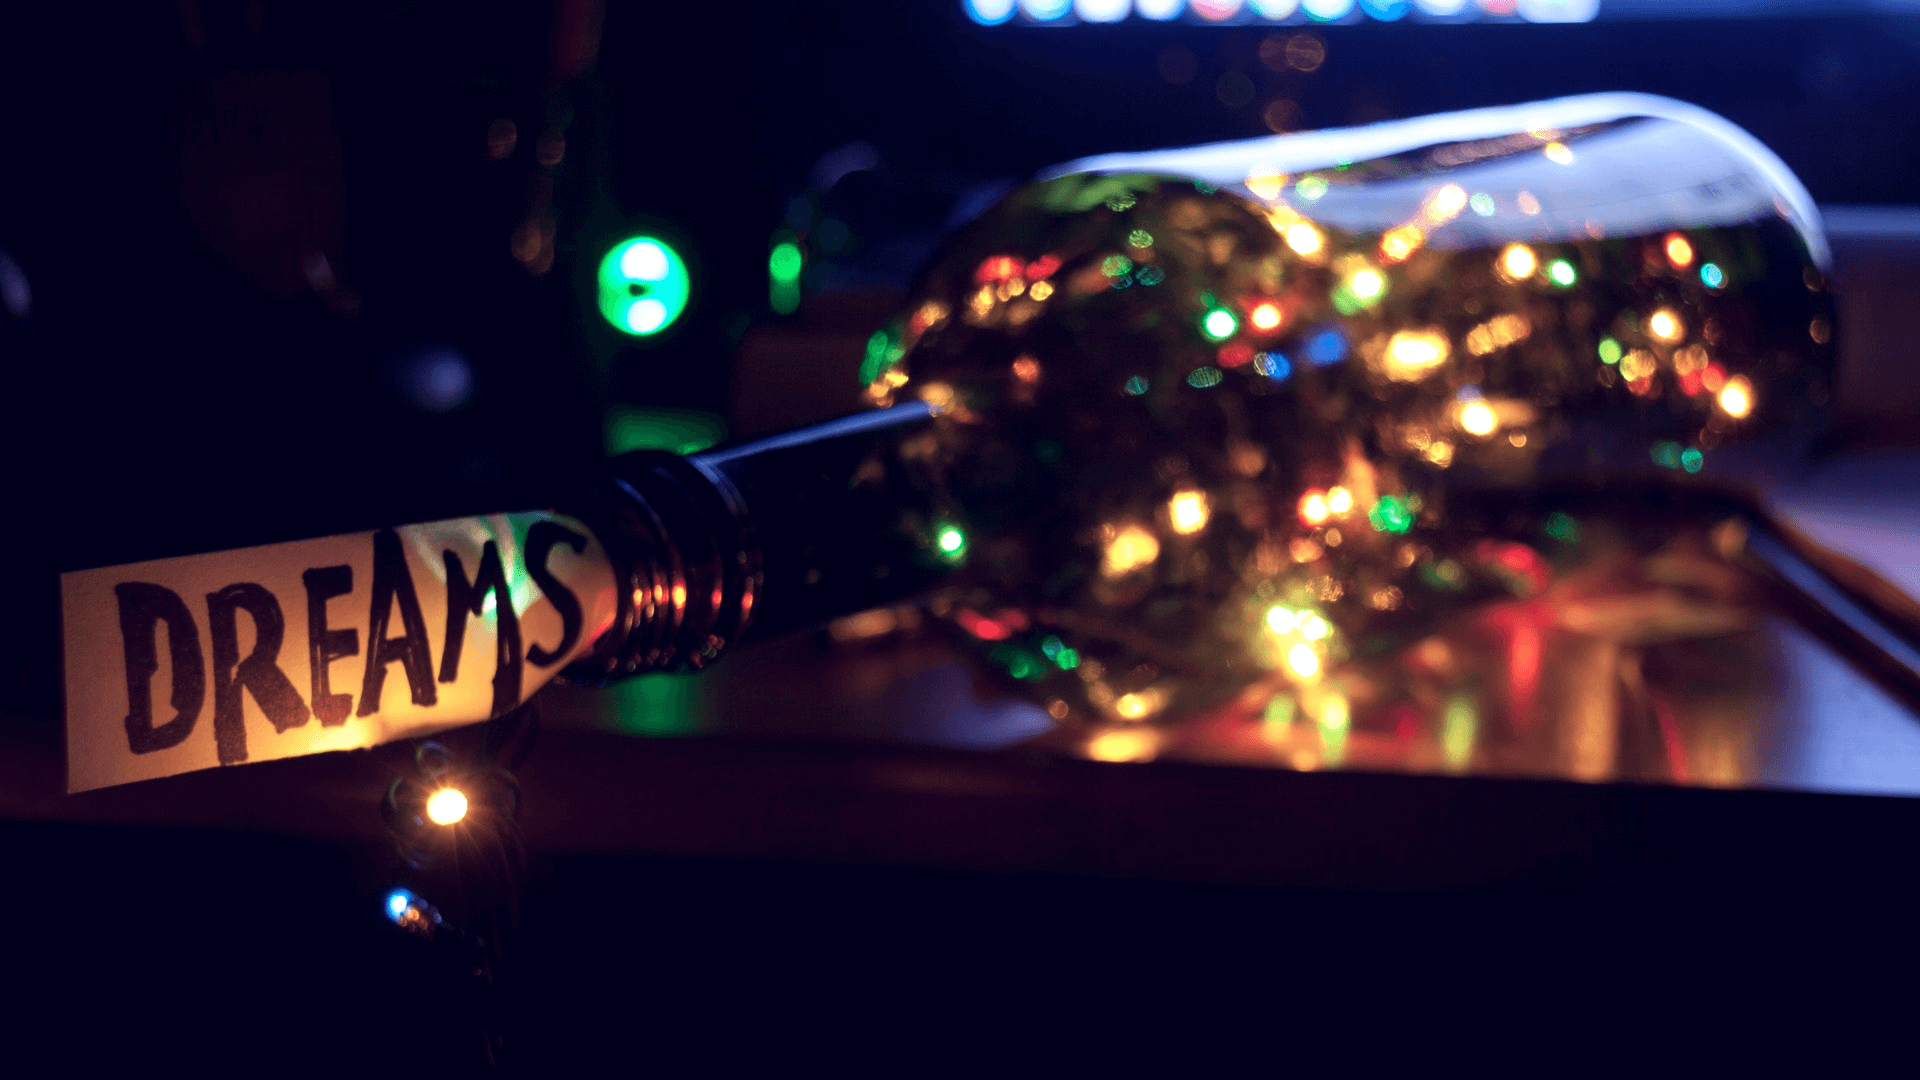 Find a Realistic New Year's Resolution in 10 Minutes or Less